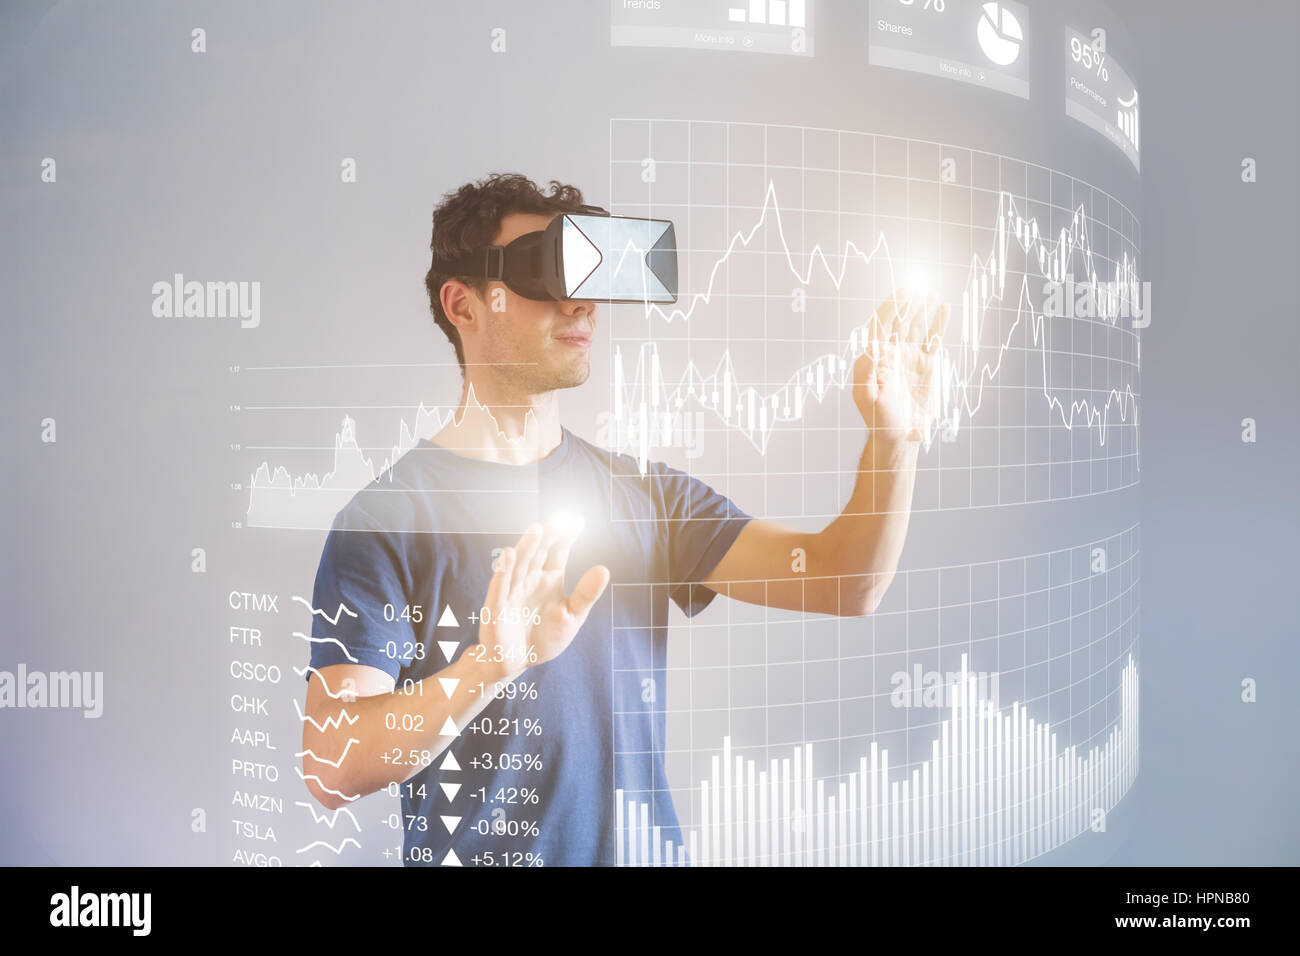 Person wearing virtual reality (VR) headset or head-mounted display (HMD) glasses to interact with financial dashboard - Stock Image